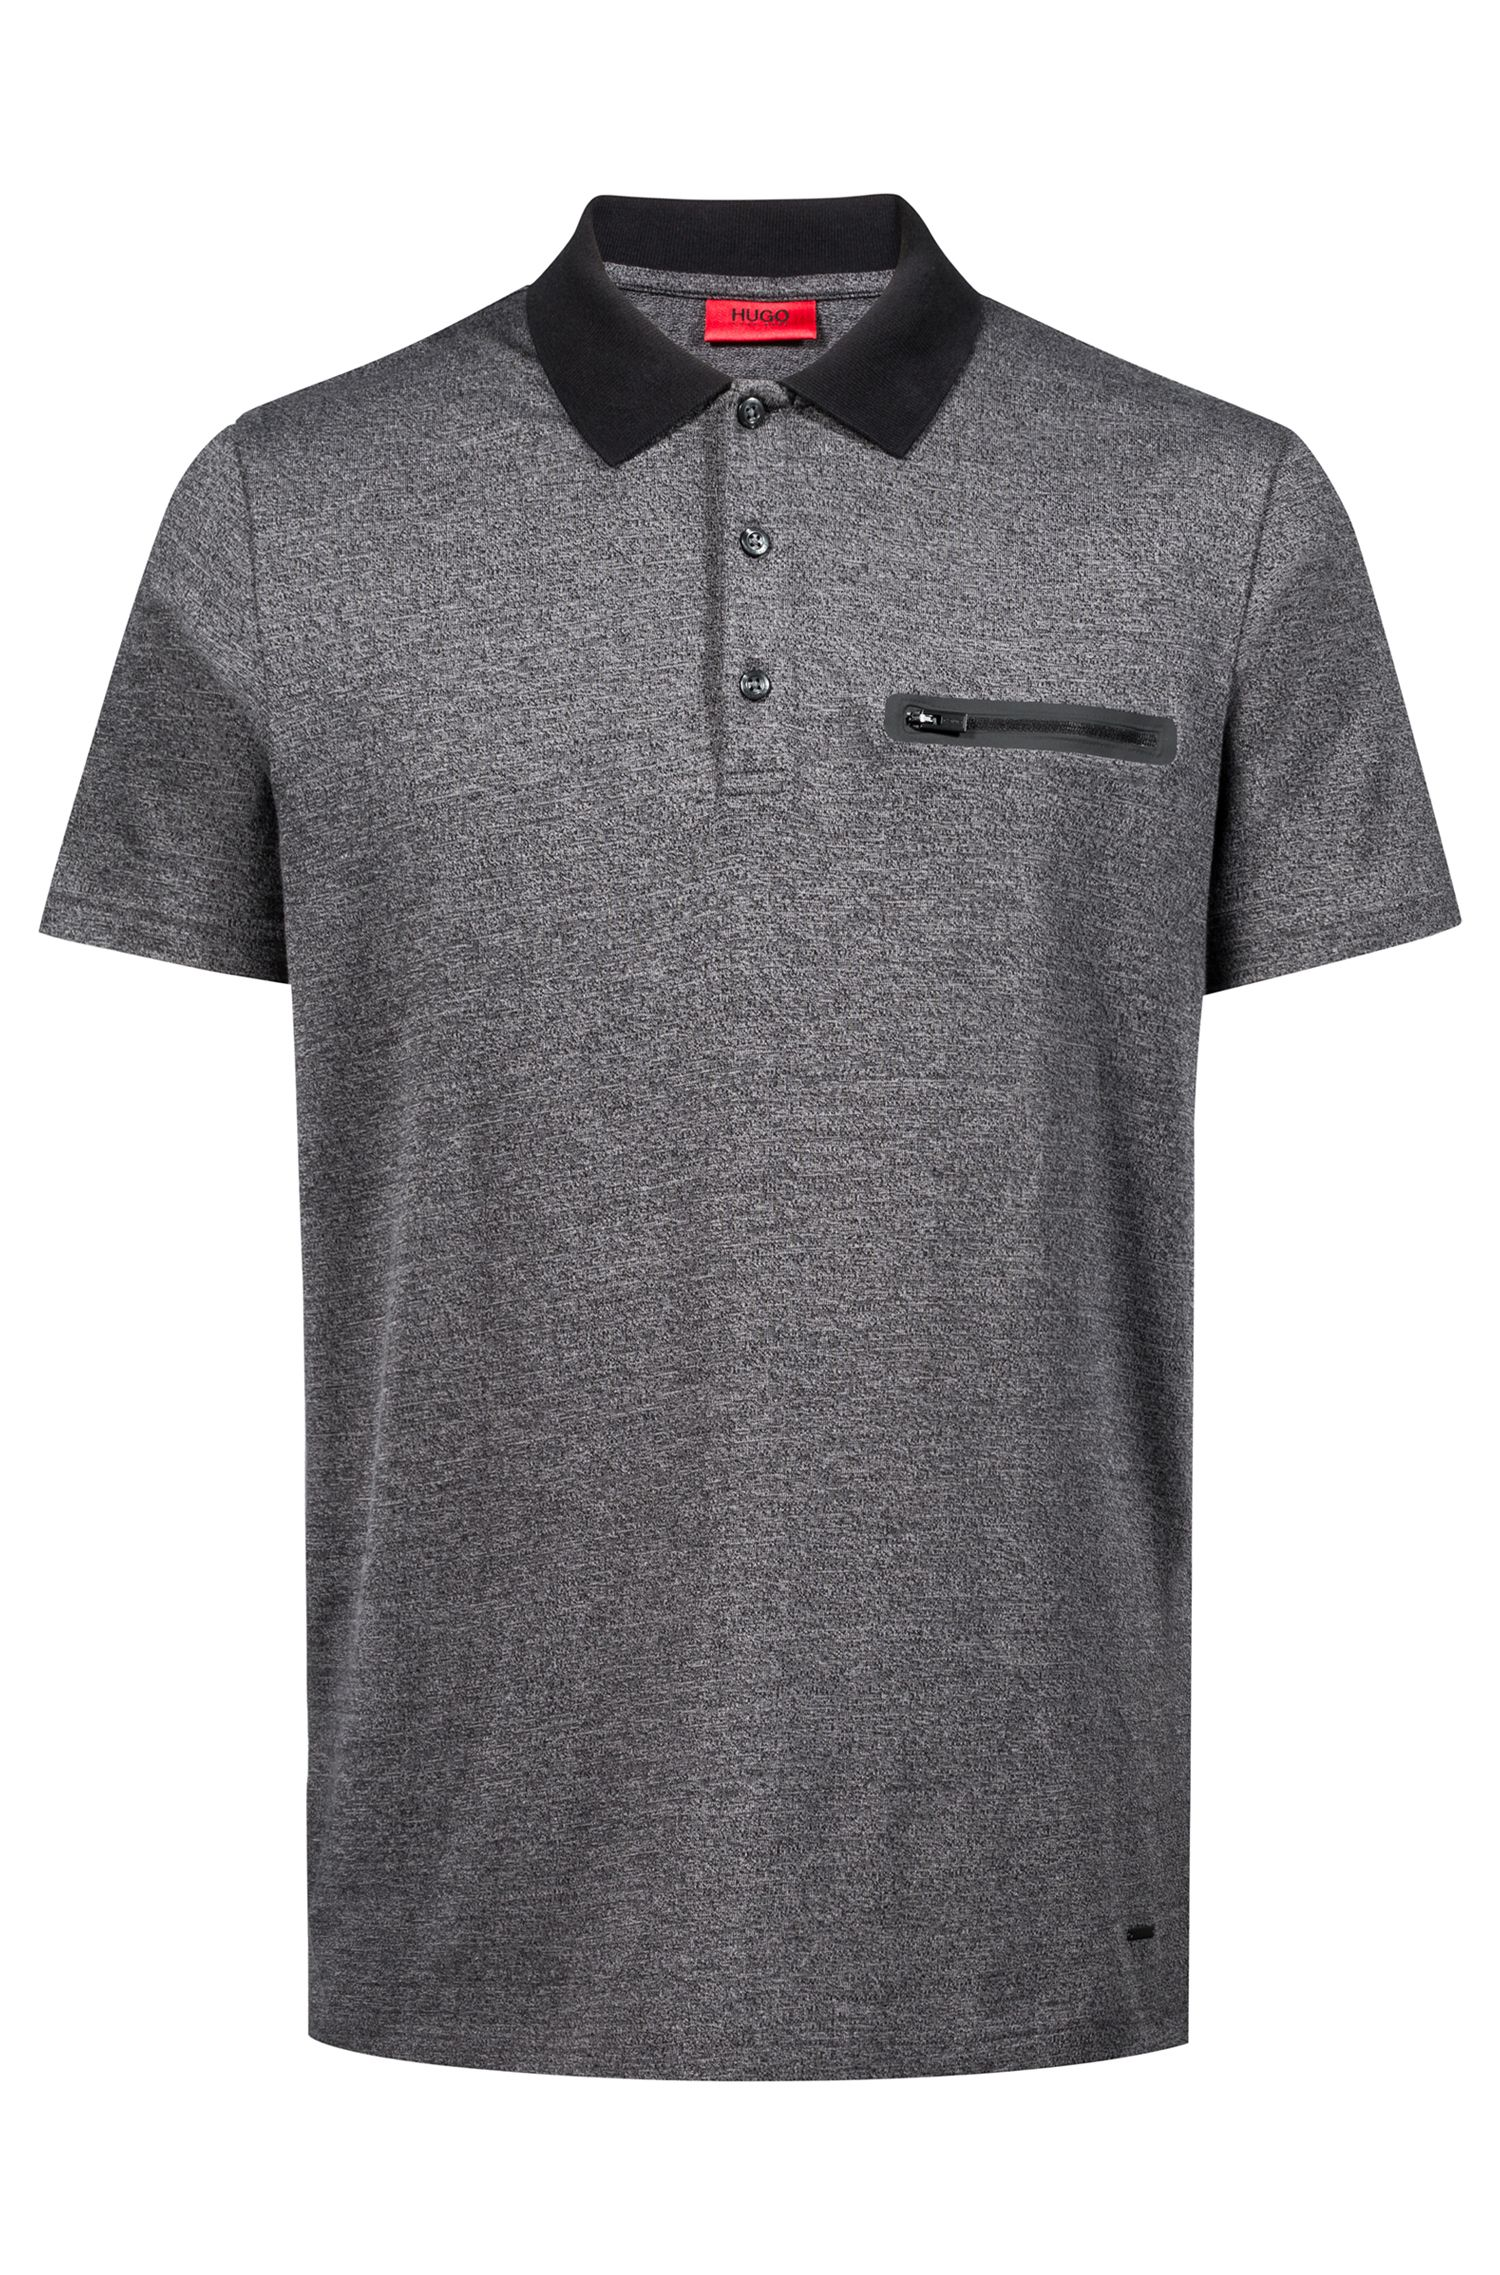 Relaxed-fit polo shirt in mouliné jersey with zippered pocket, Black